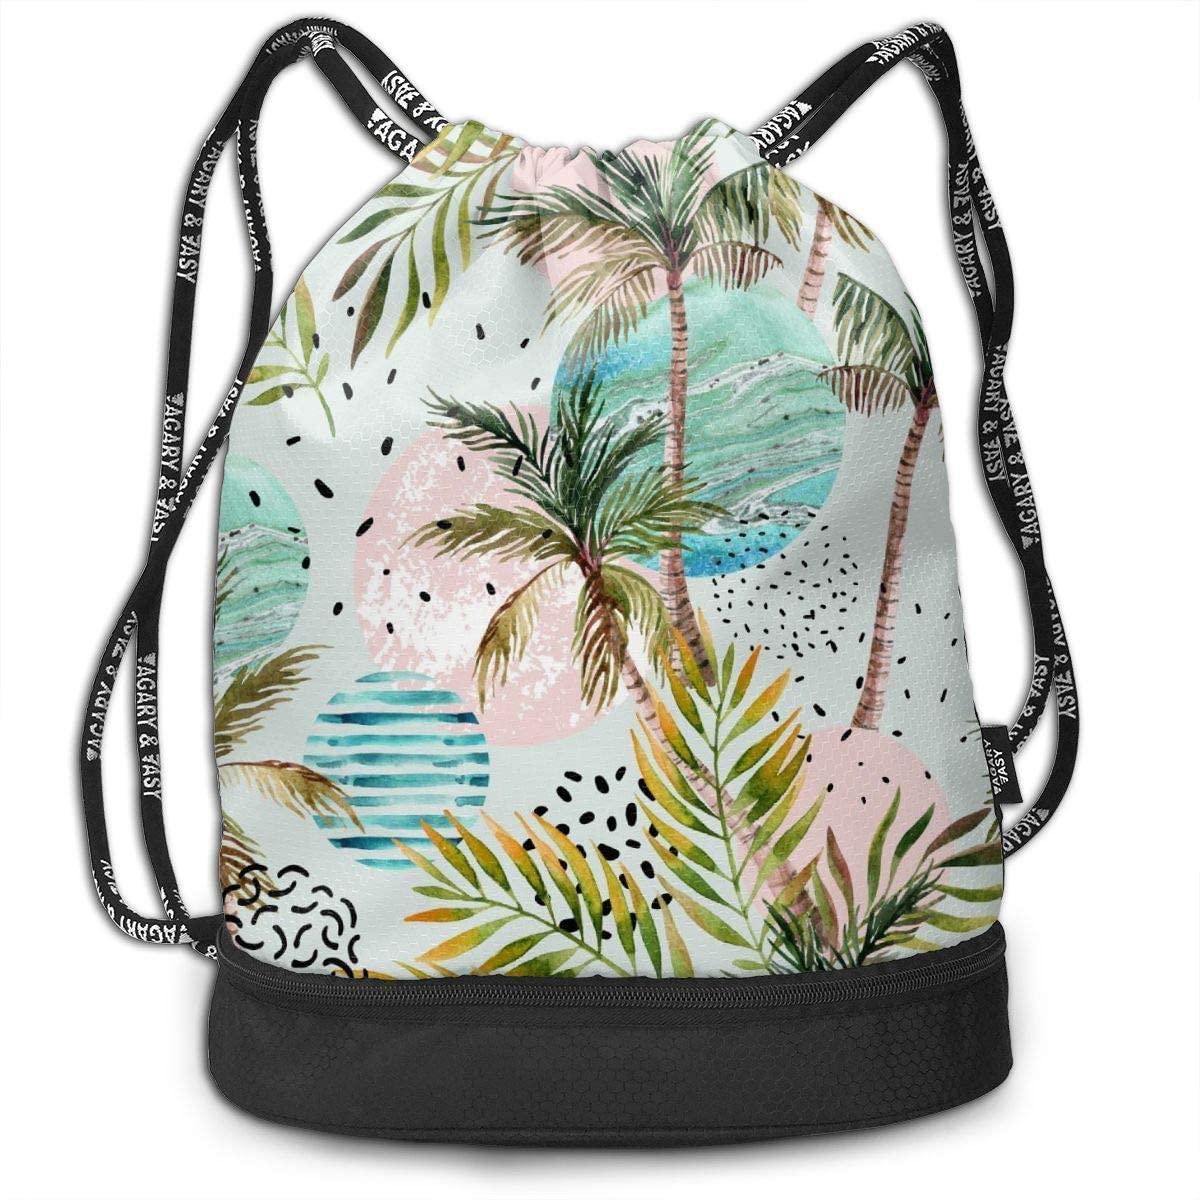 Bundle Backpacks Summer Watercolor Palm Tree Gym Sack Drawstring Bags Casual Daypack Yoga Bag School Training Pouch